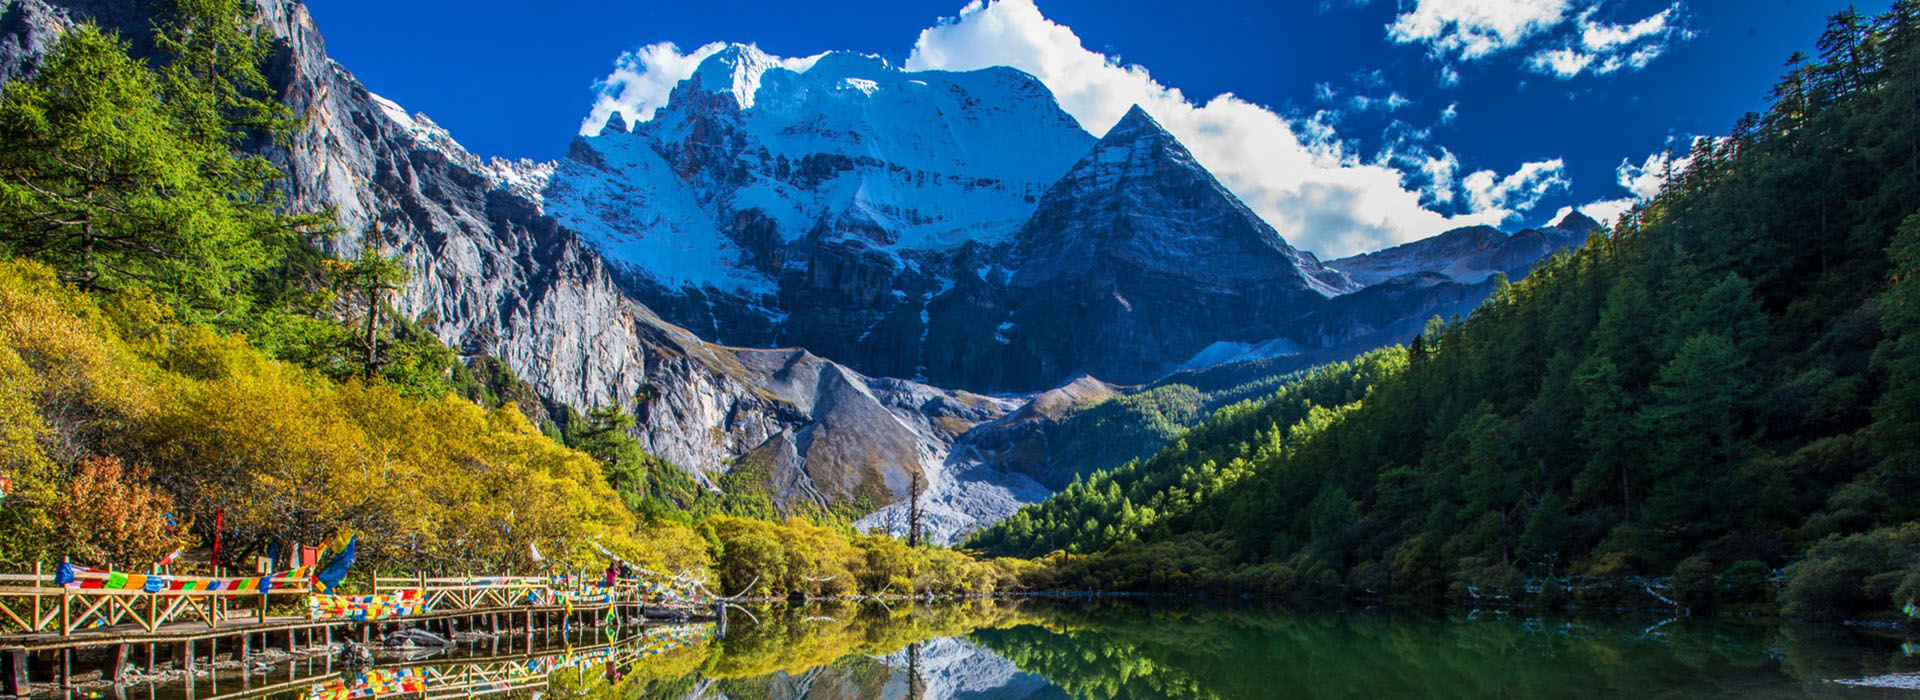 10 Most Beautiful Places in Sichuan